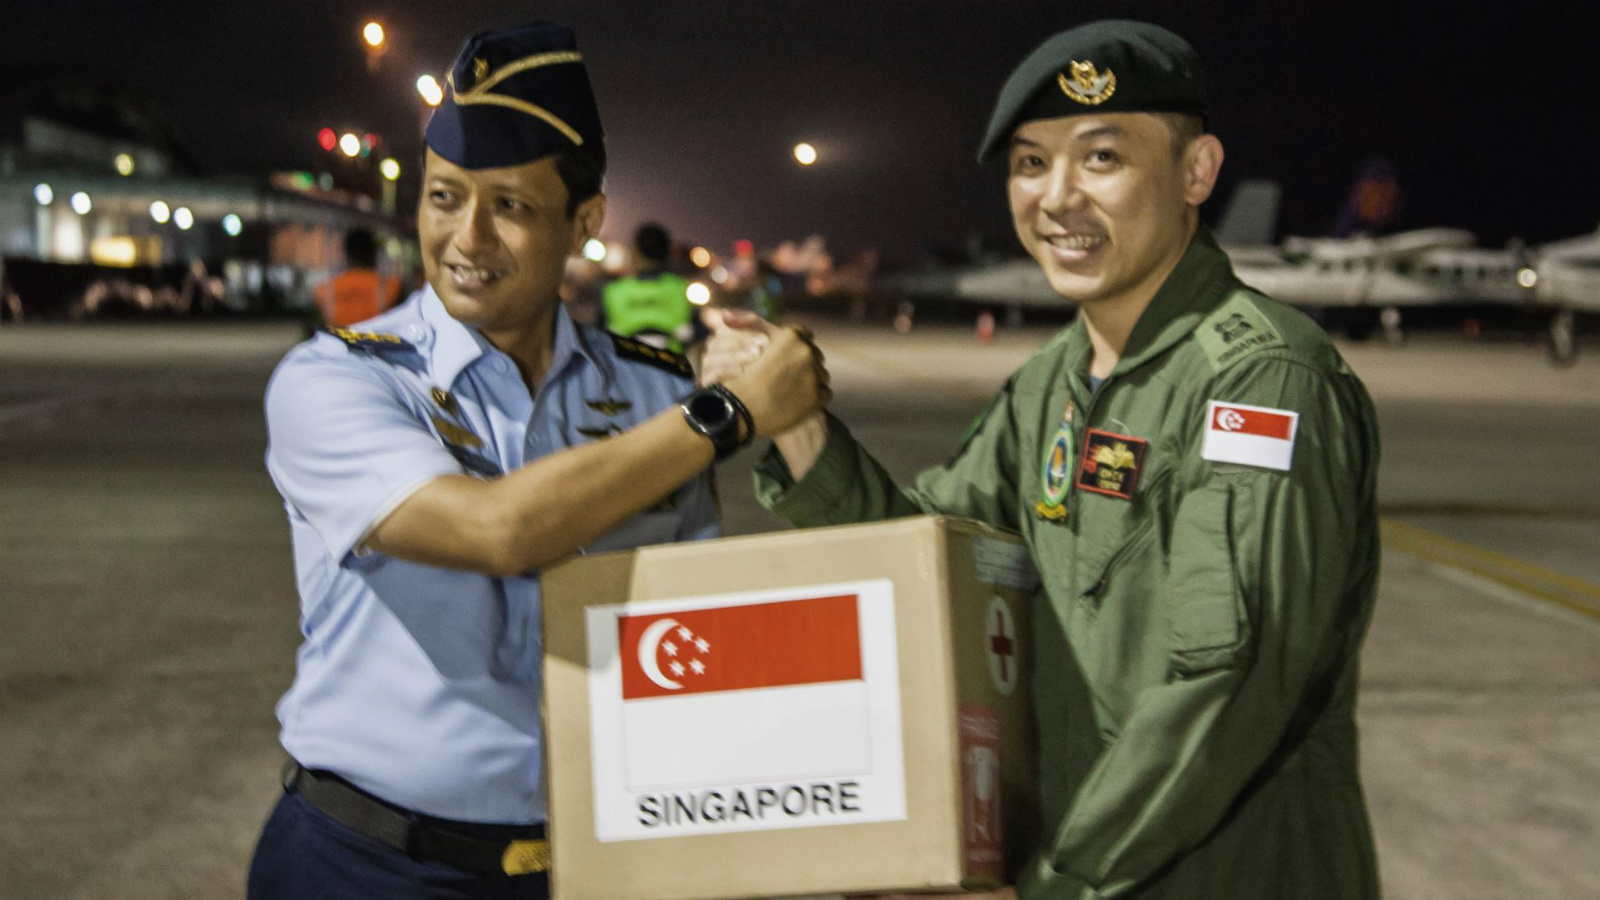 The Singapore Armed Forces Mission Commander, Lieutenant Colonel (LTC) Oh Chun Keong (right) handing over the relief package to LTC Ali Sudibyo, of the Indonesian Armed Forces (left) at Balikpapan Airport, Indonesia.